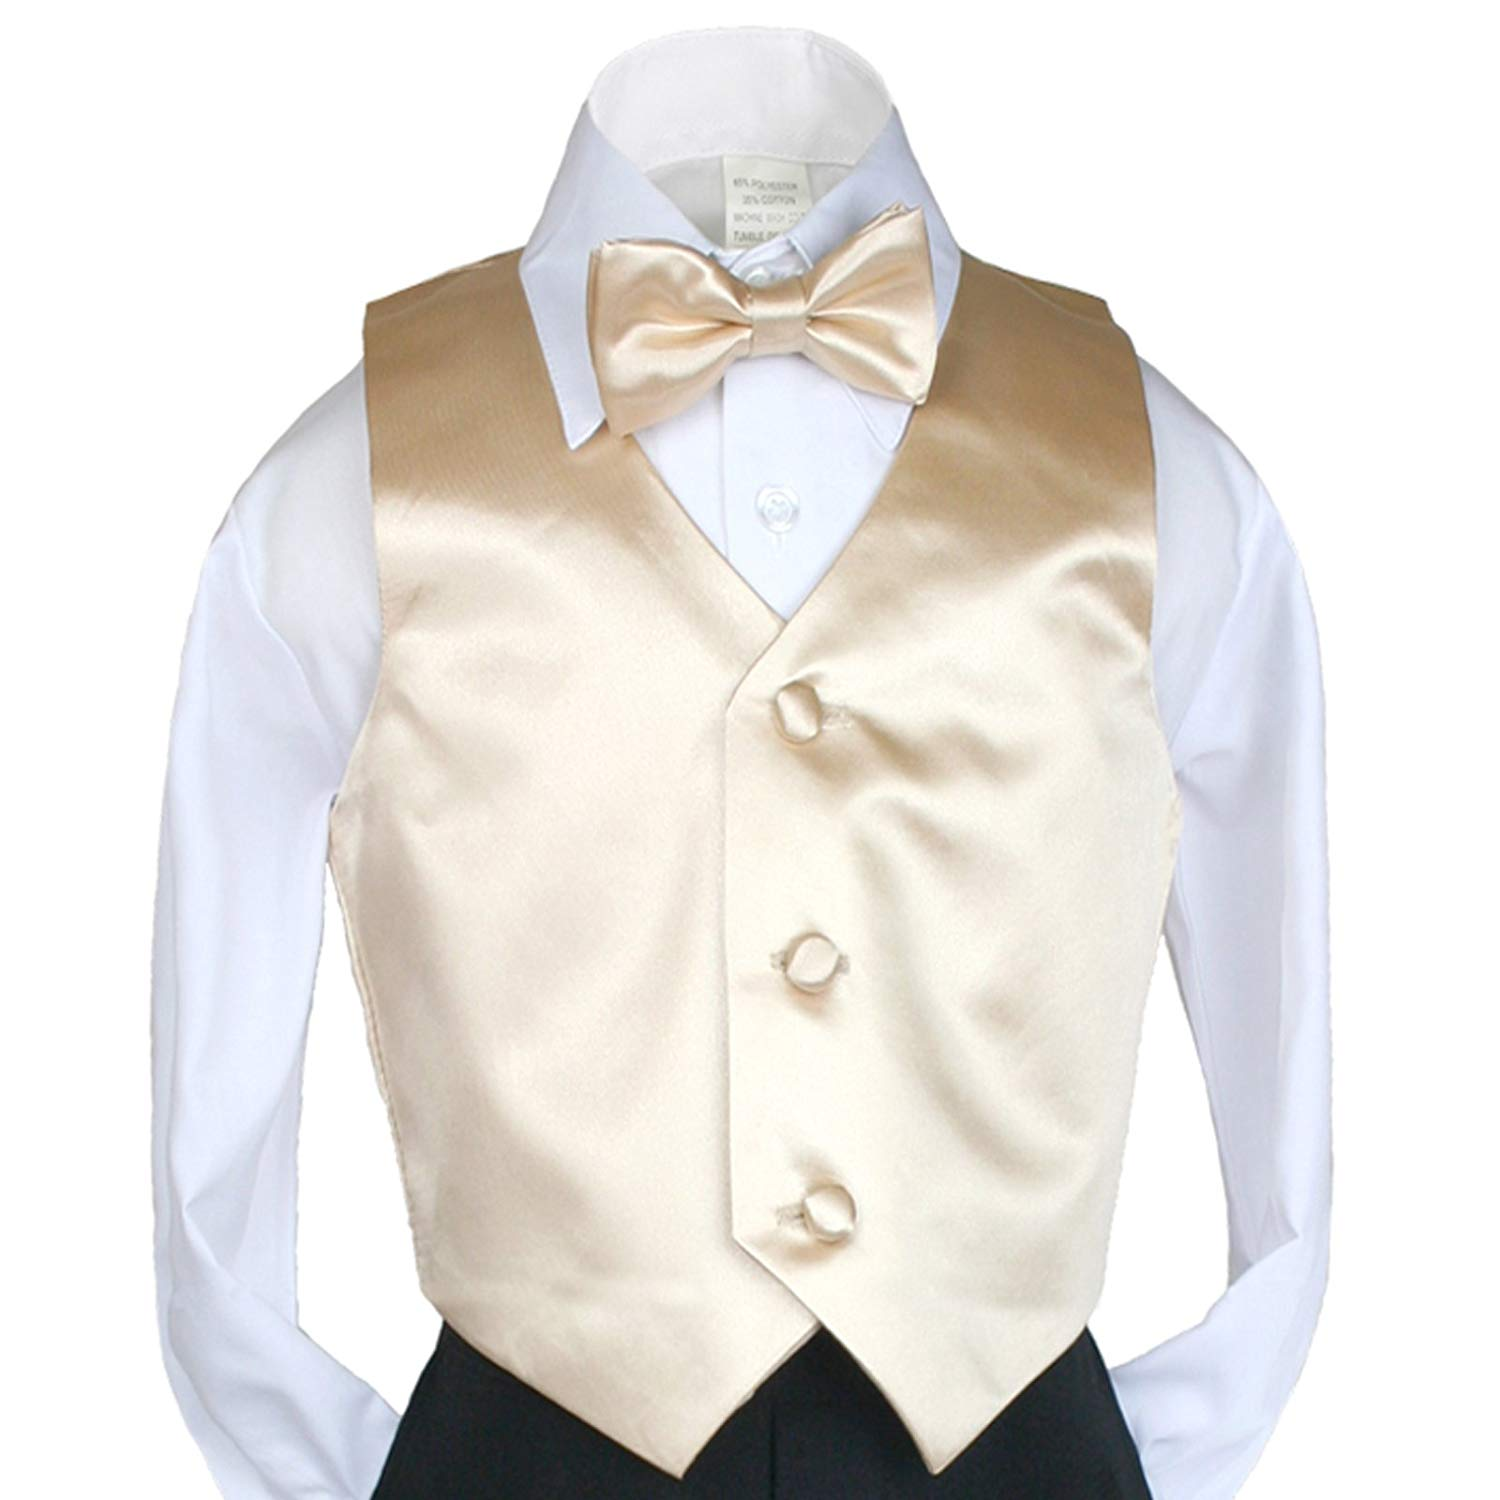 Coral Unotux Boys Satin Bow tie from Baby to Teen